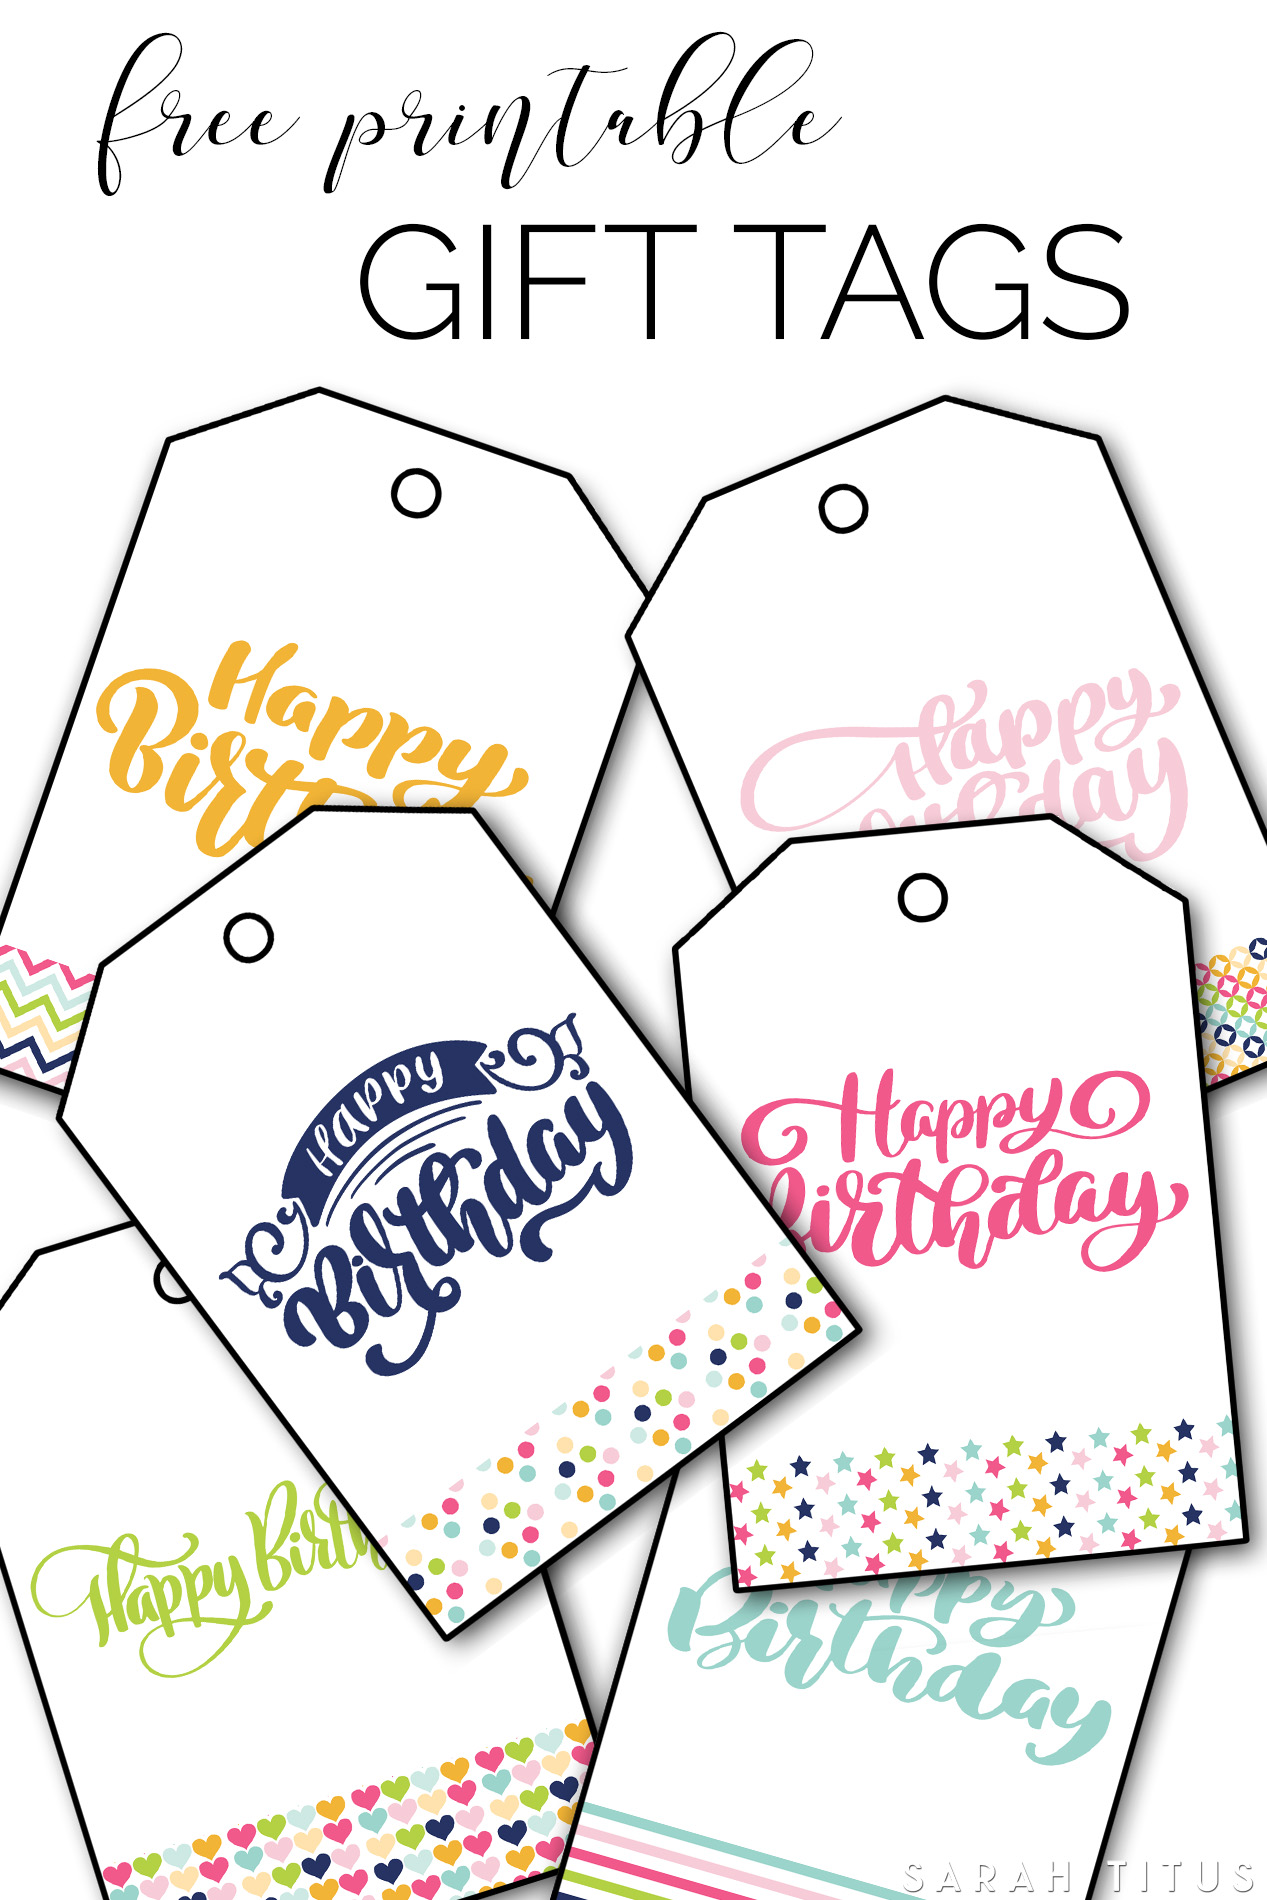 photograph regarding Gift Tags Printable named Cost-free Printable Delighted Birthday Reward Tags - Sarah Titus